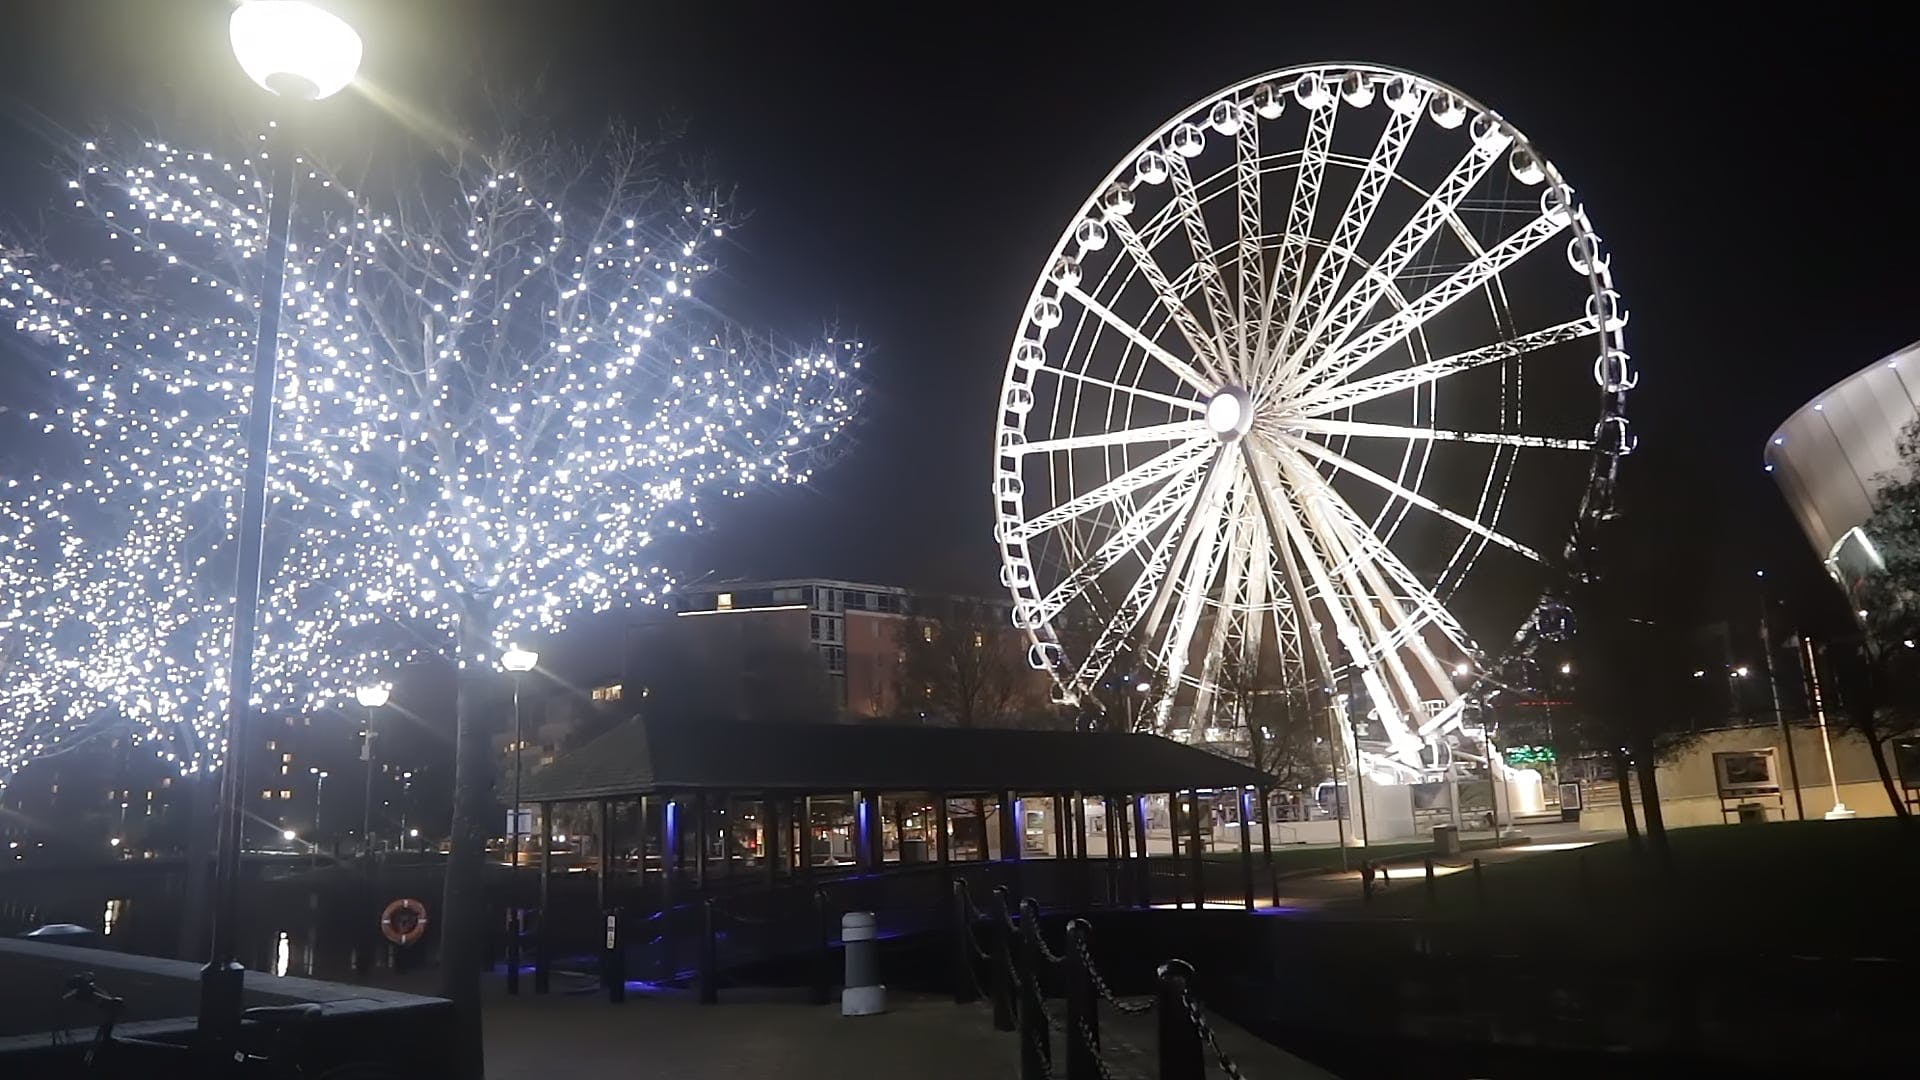 An Illuminated Tree And Ferris Wheel